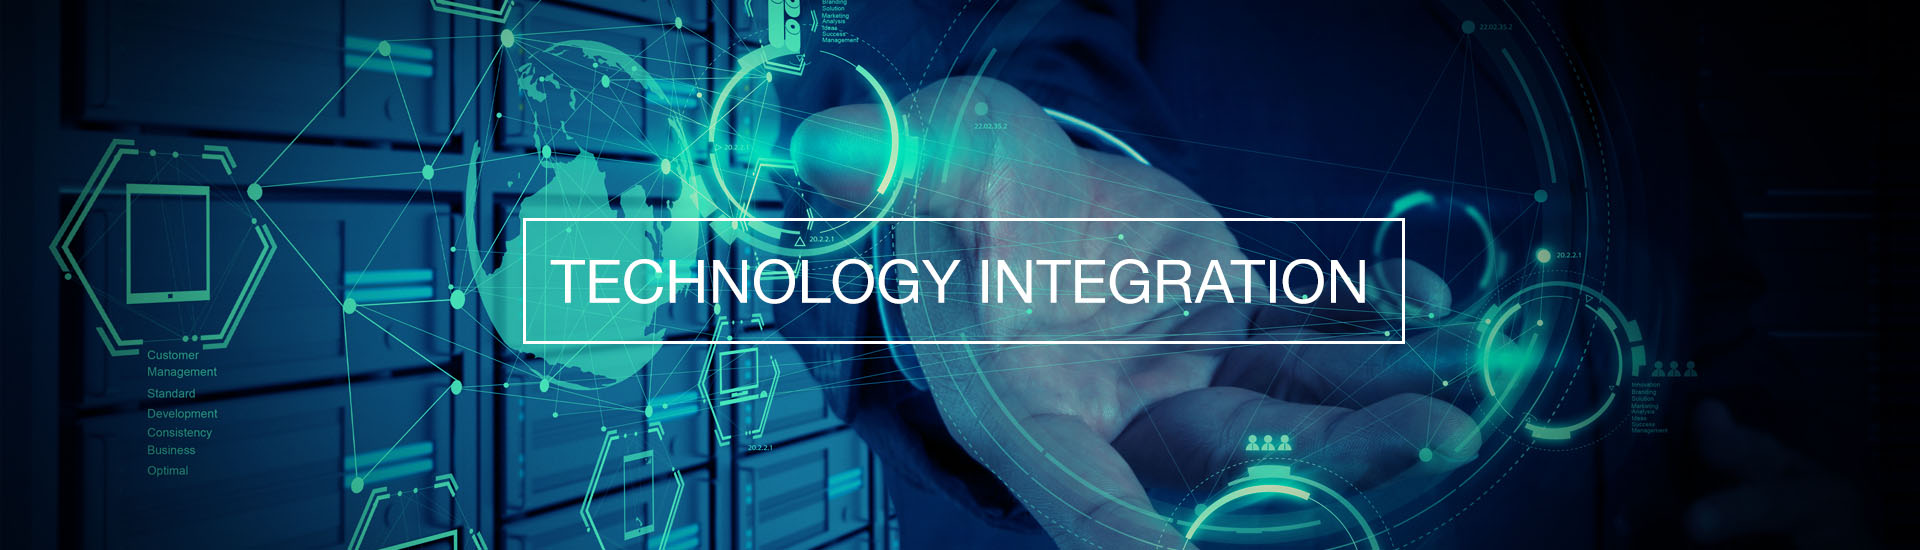 technology integration Technology integration technology what technology tools do you already use in the classroom or want to learn more about.